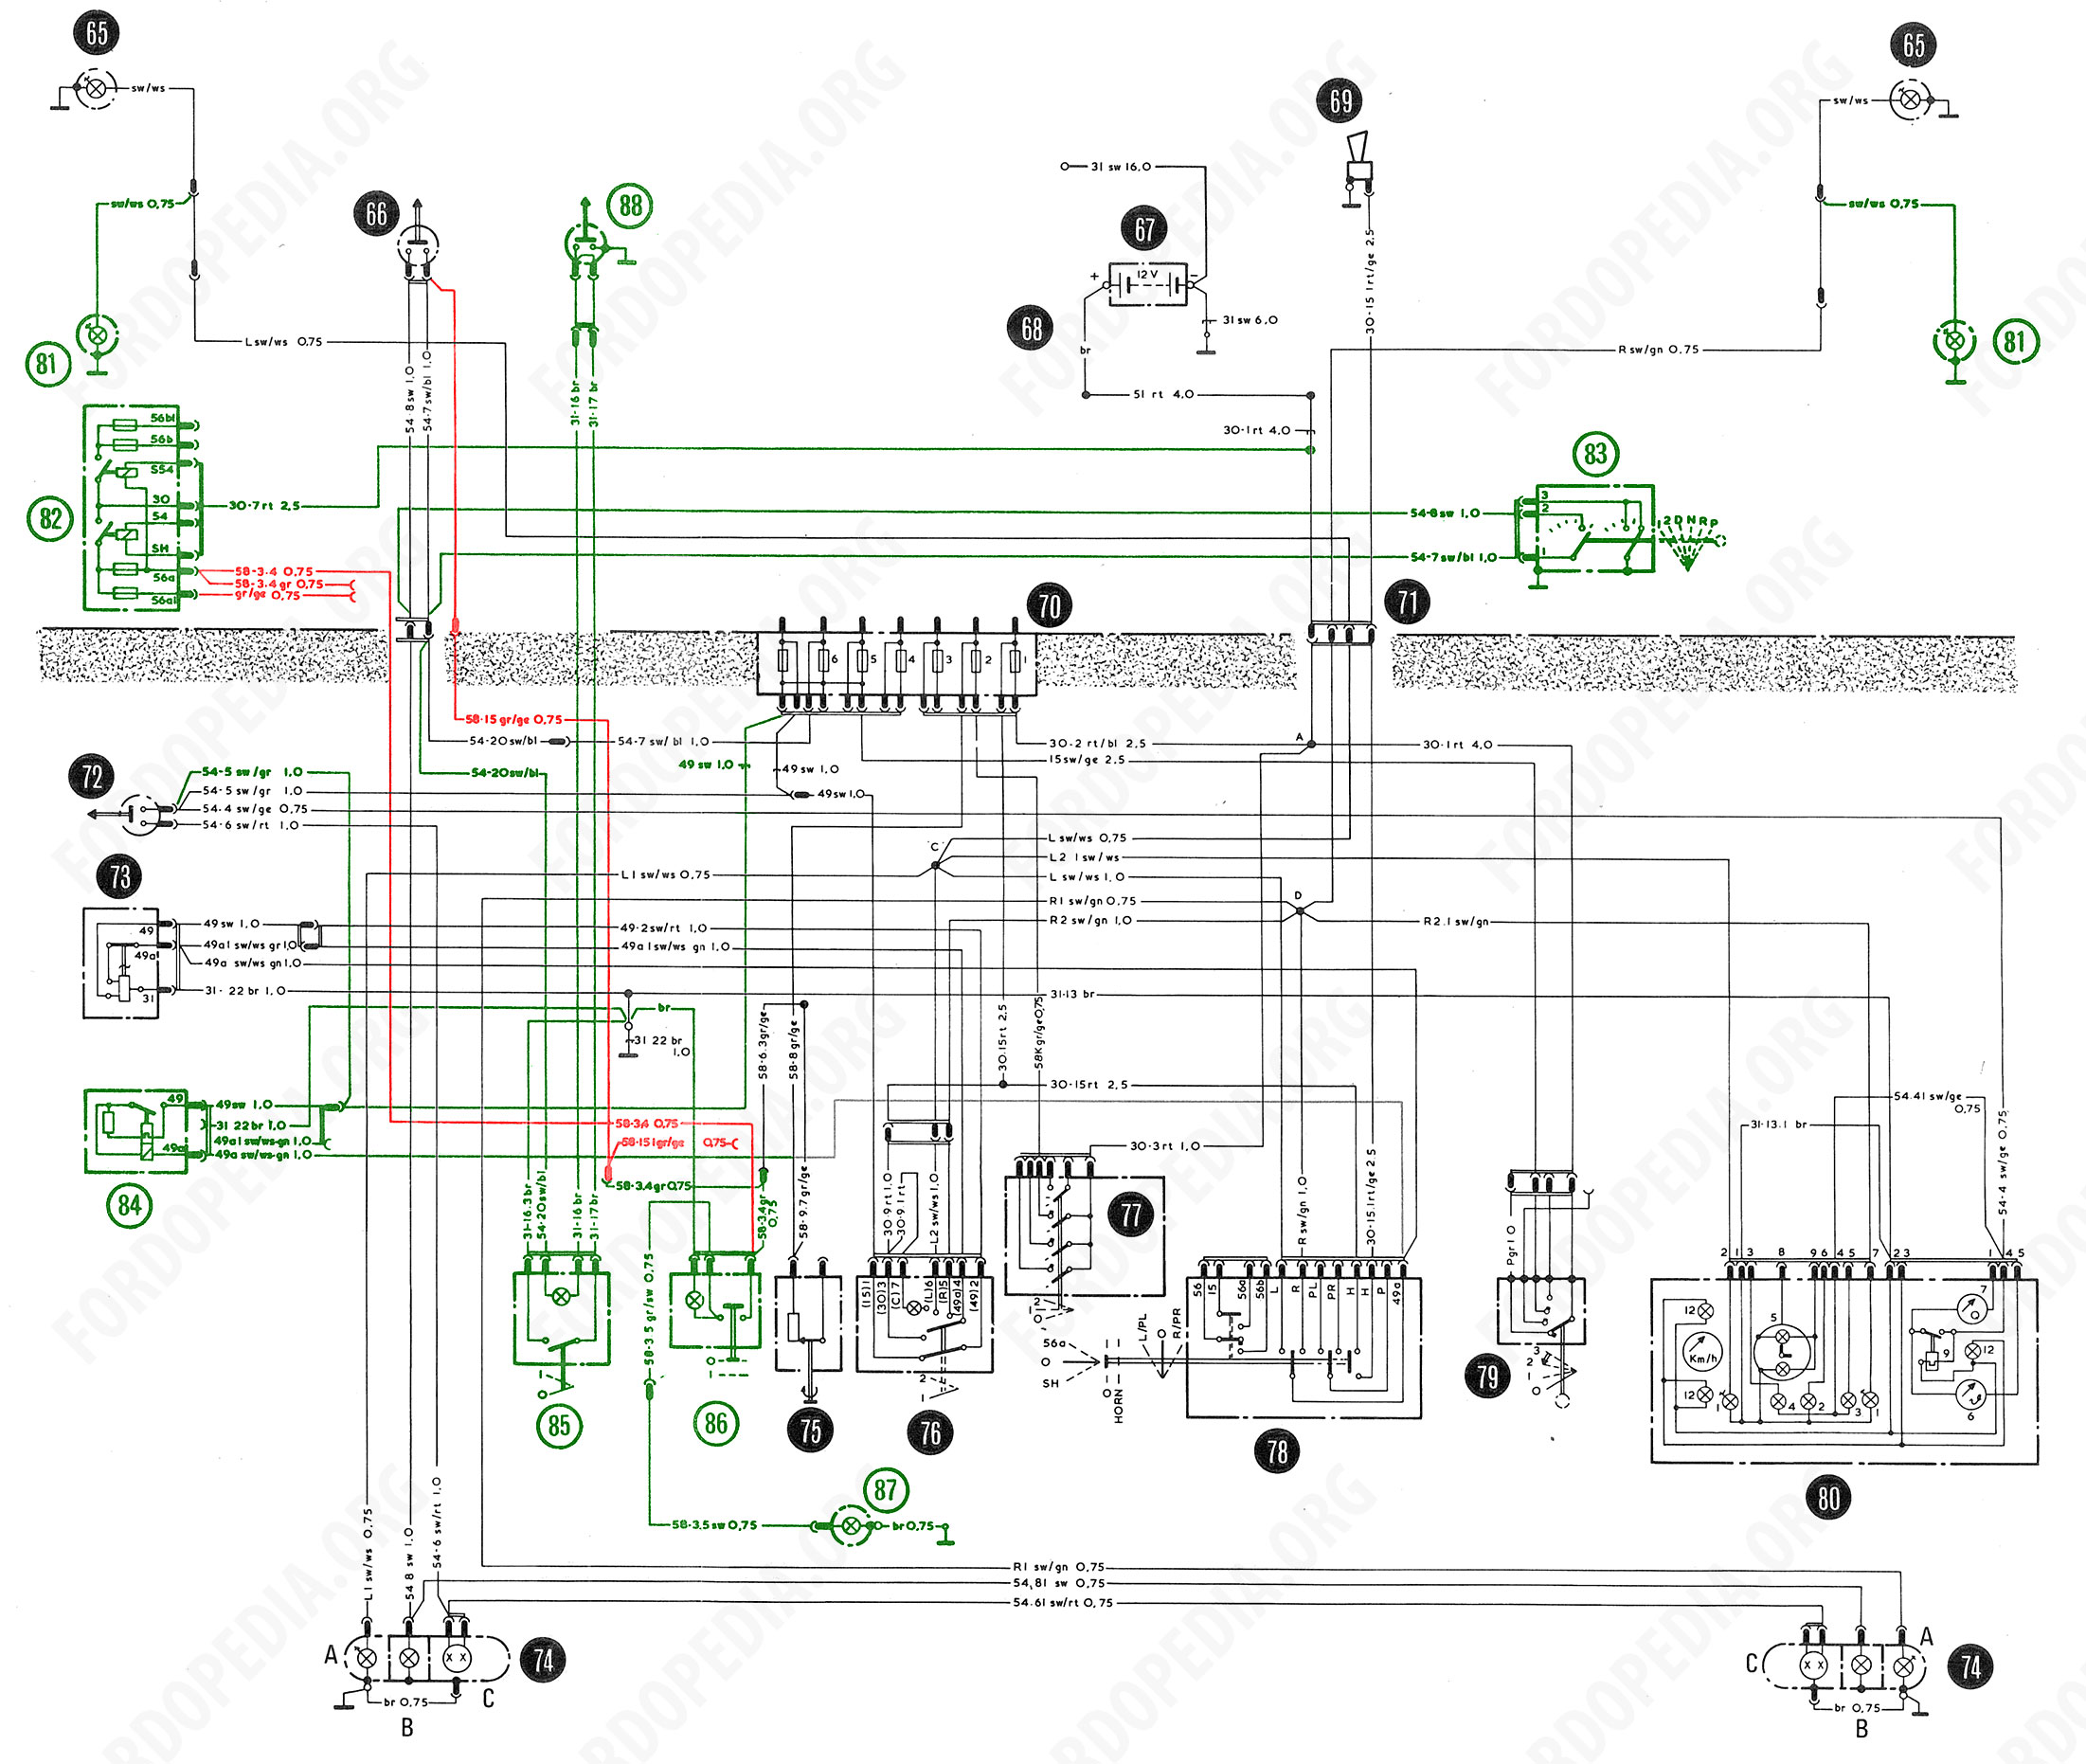 Circuit Vs Wiring Diagram Download Full Size Image 2191x1965 348 Kb Diagrams Taunus Tc2 Cortina Mk4 Base Version L Gl